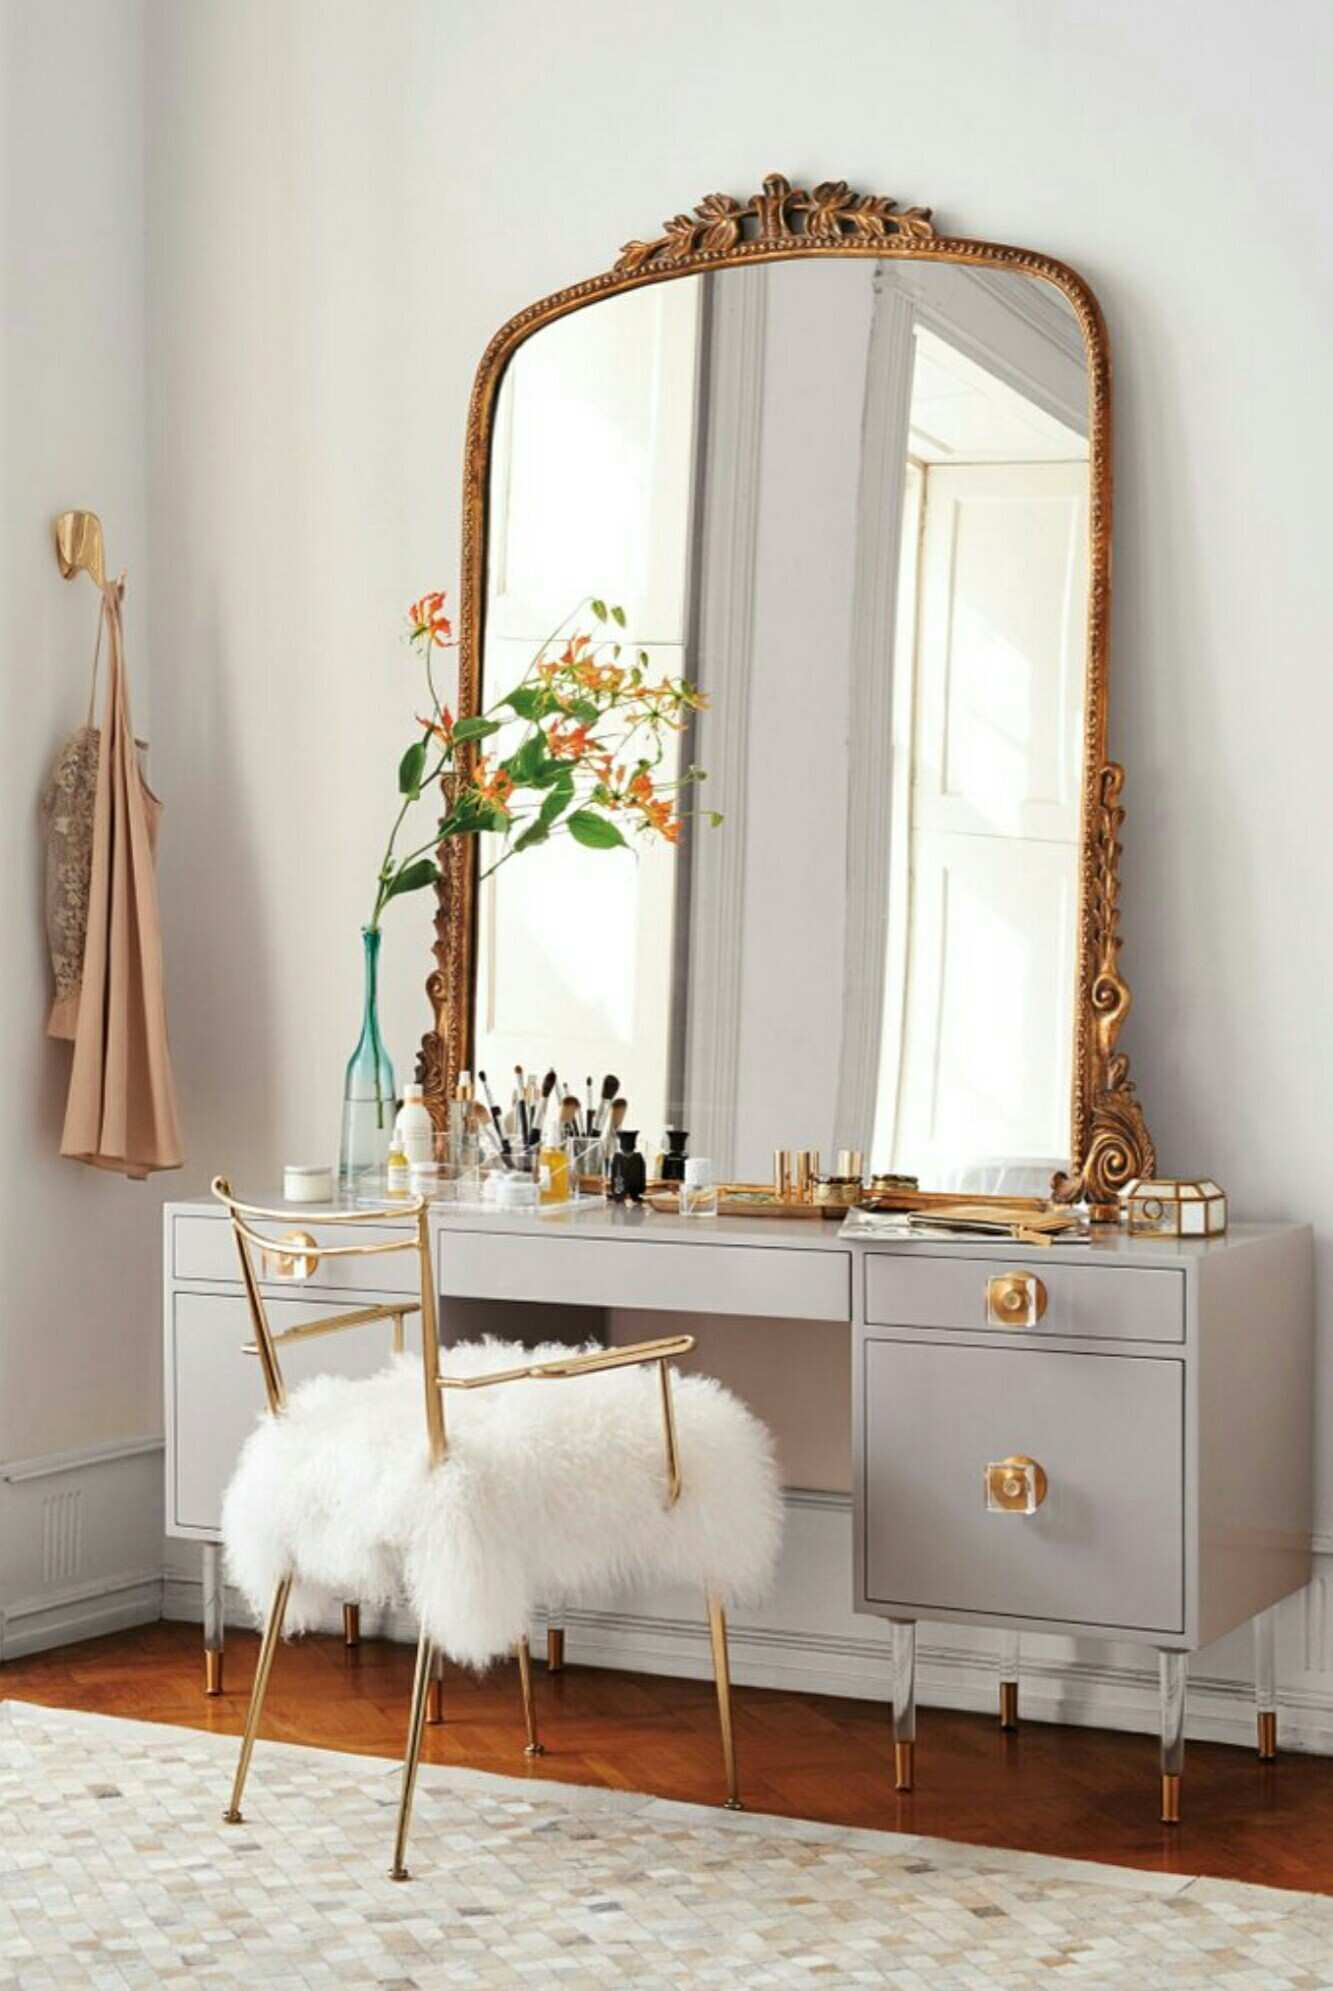 Vanity French large mirror furry chair